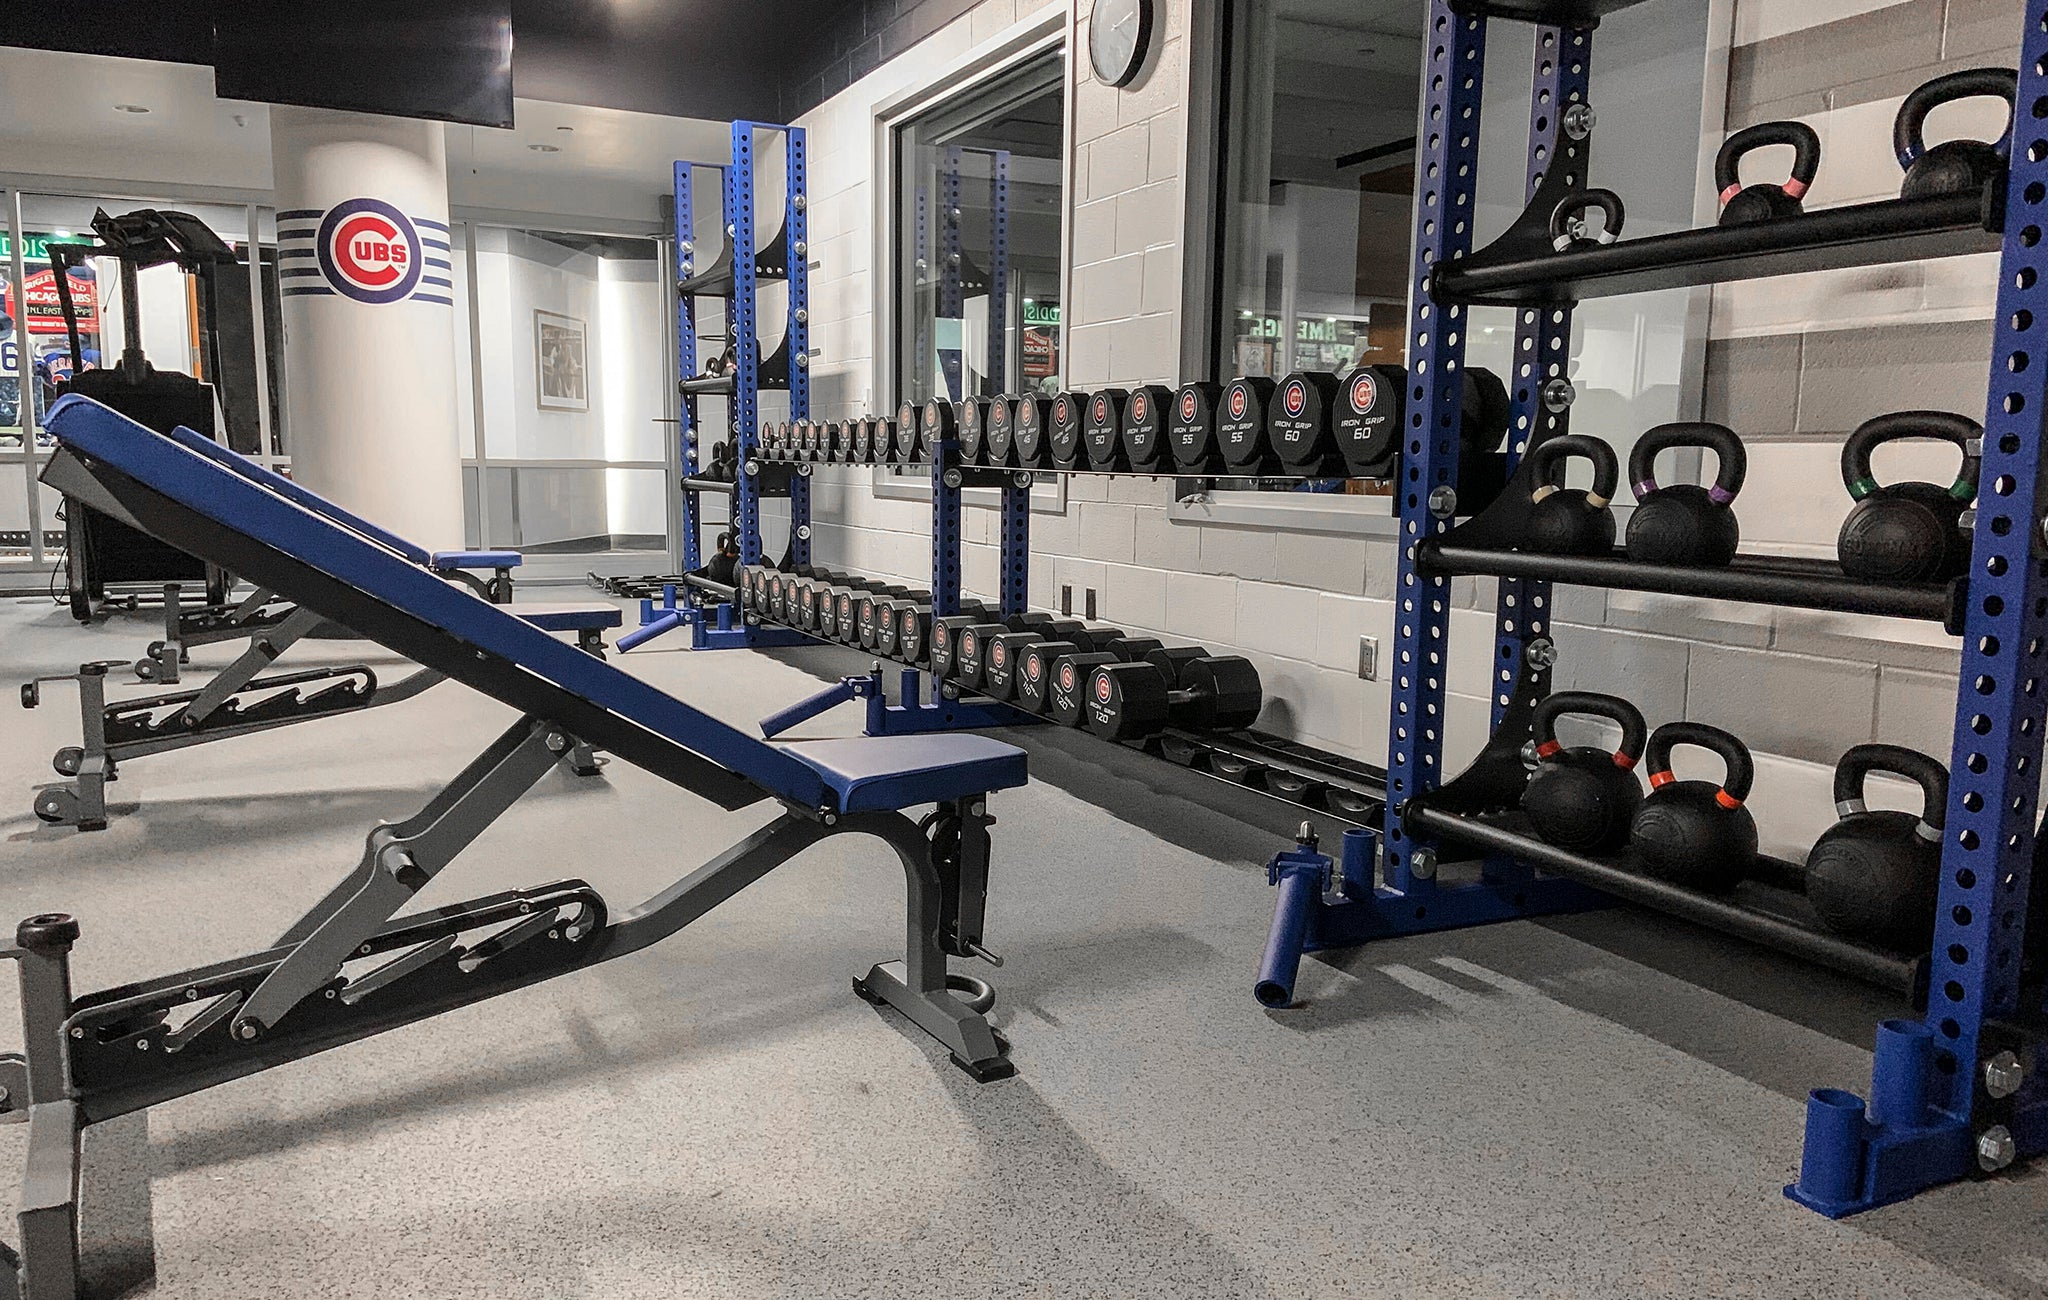 Chicago Cubs training center